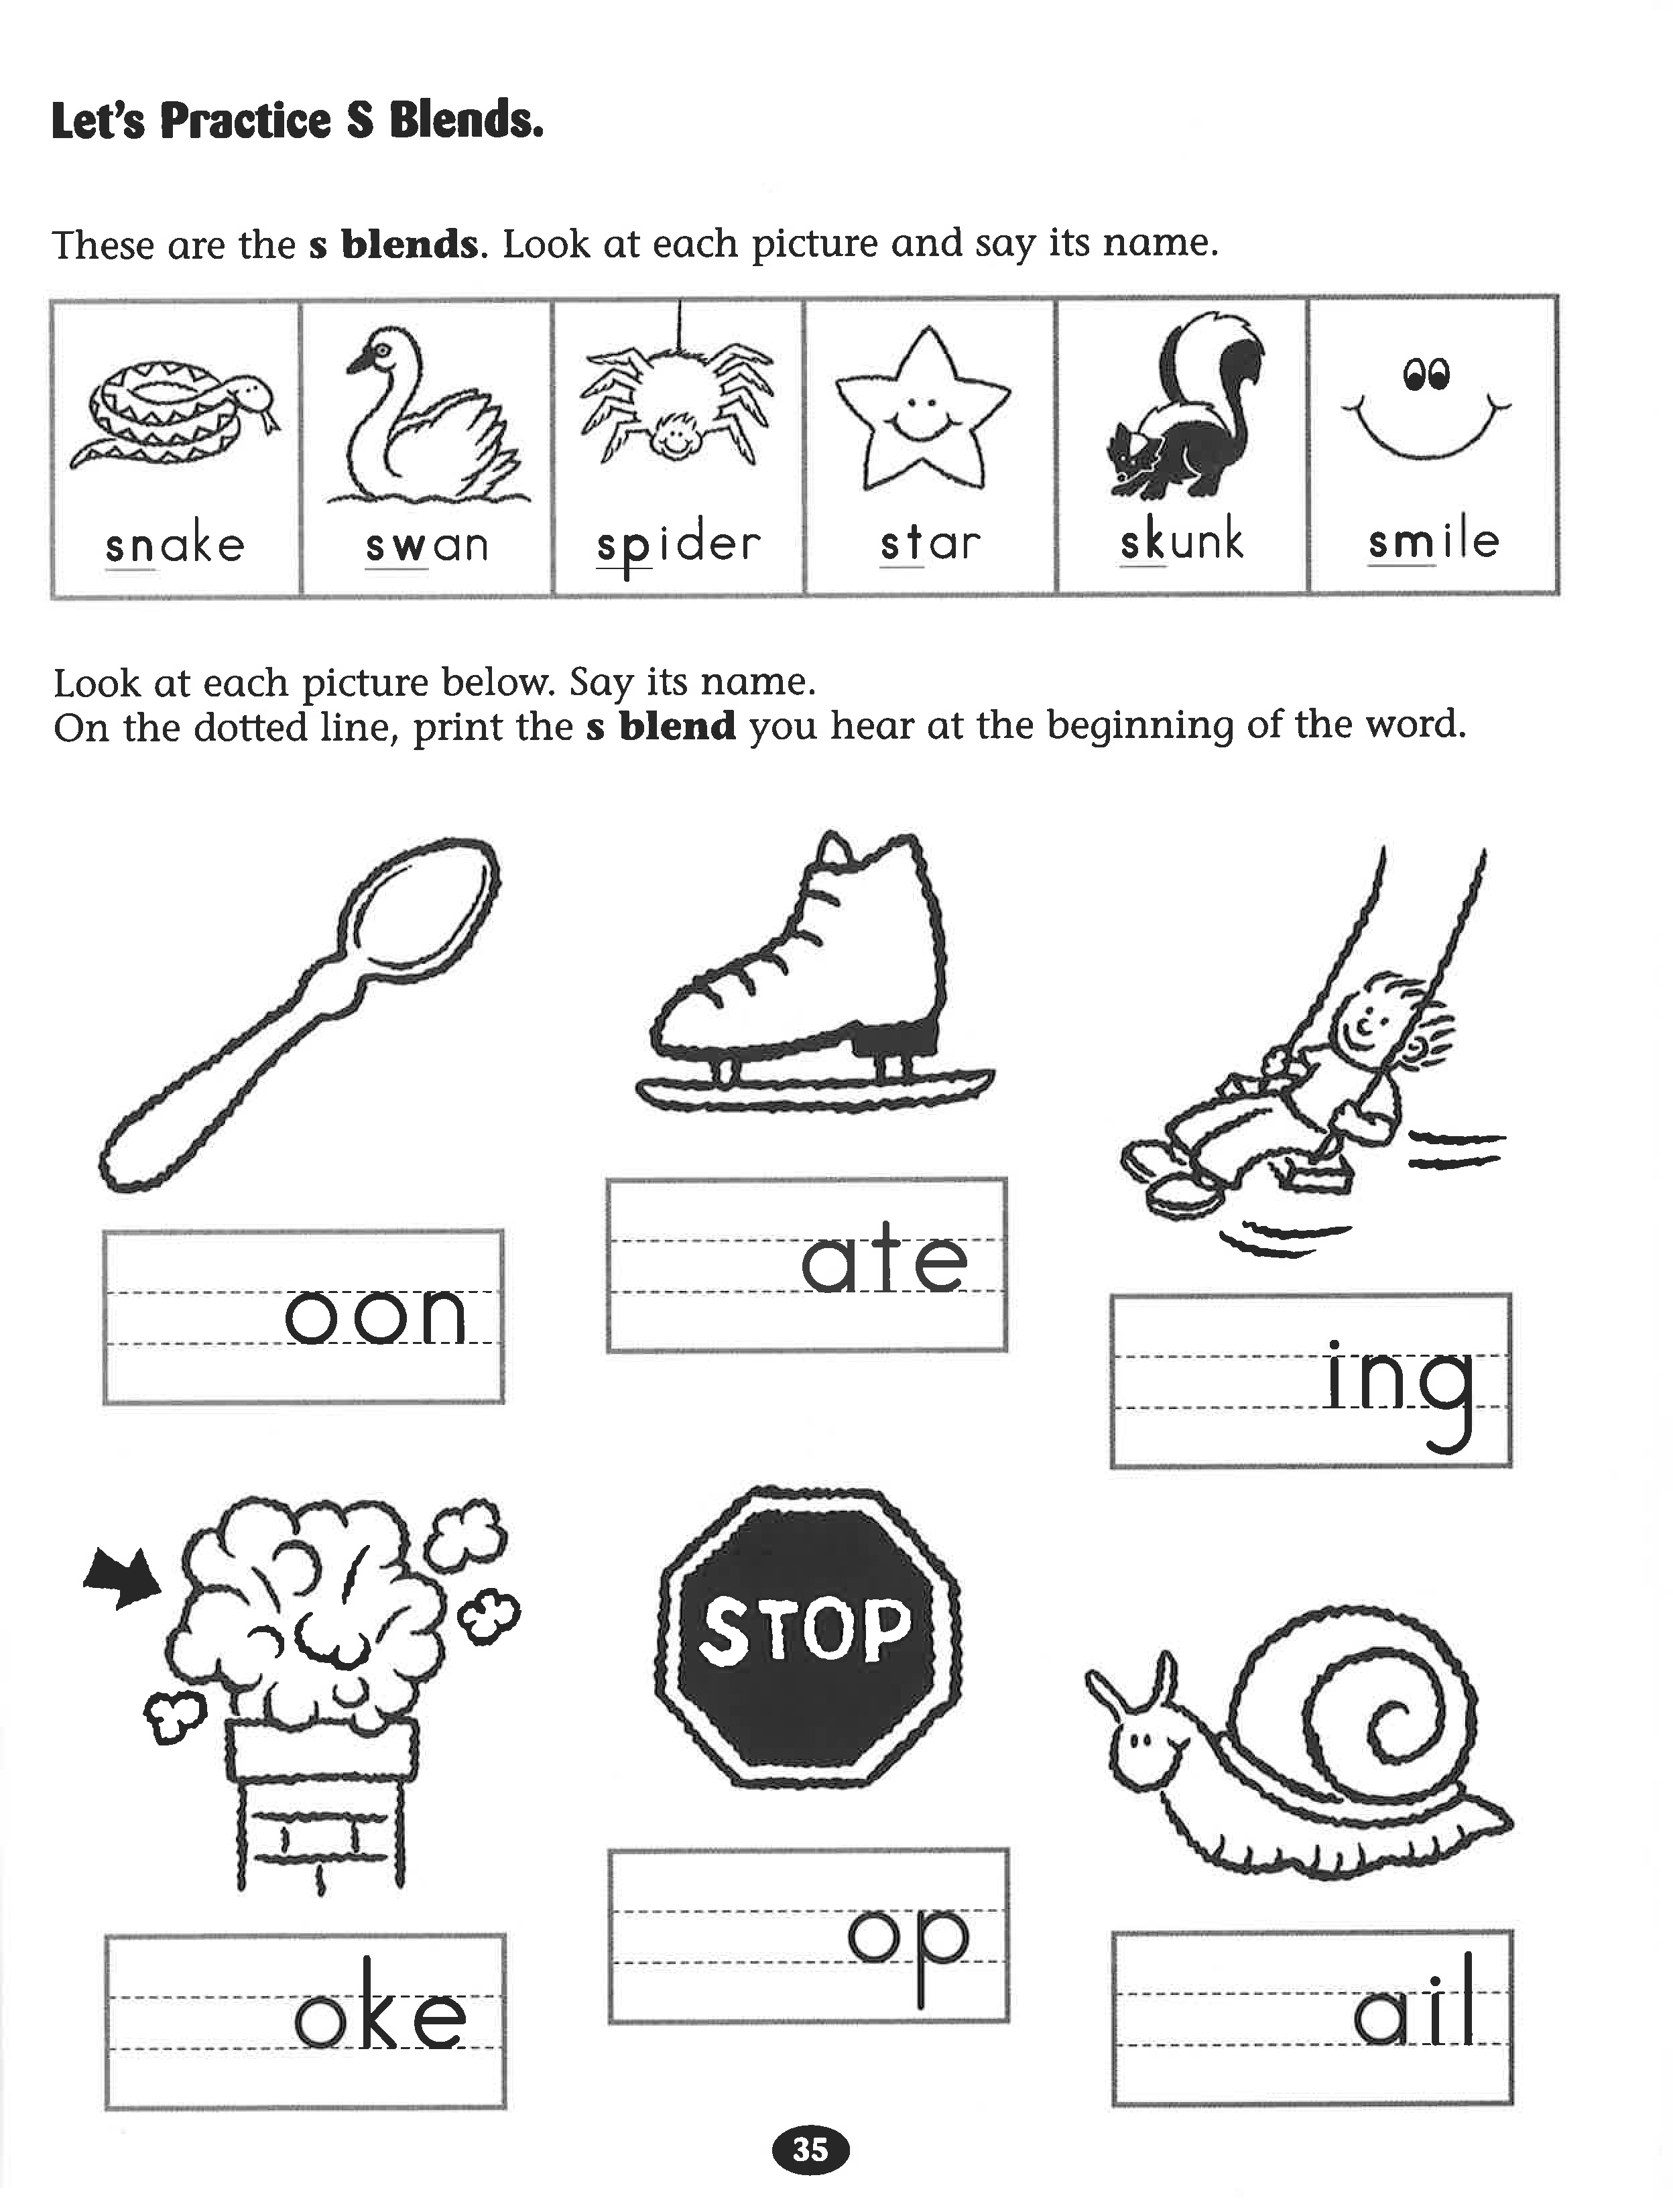 Let S Practice S Blends Worksheet